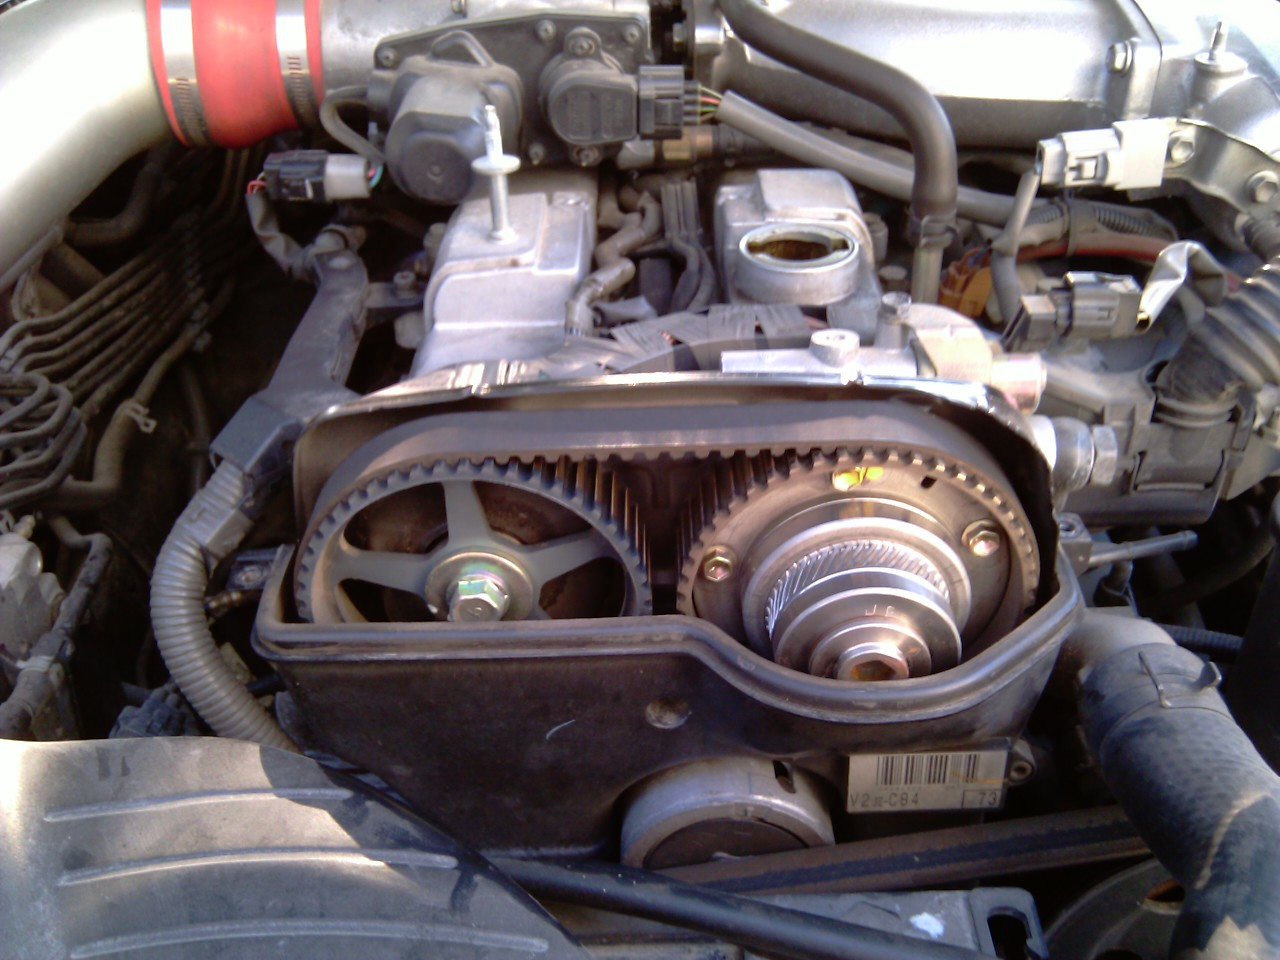 Ford engine knock at startup